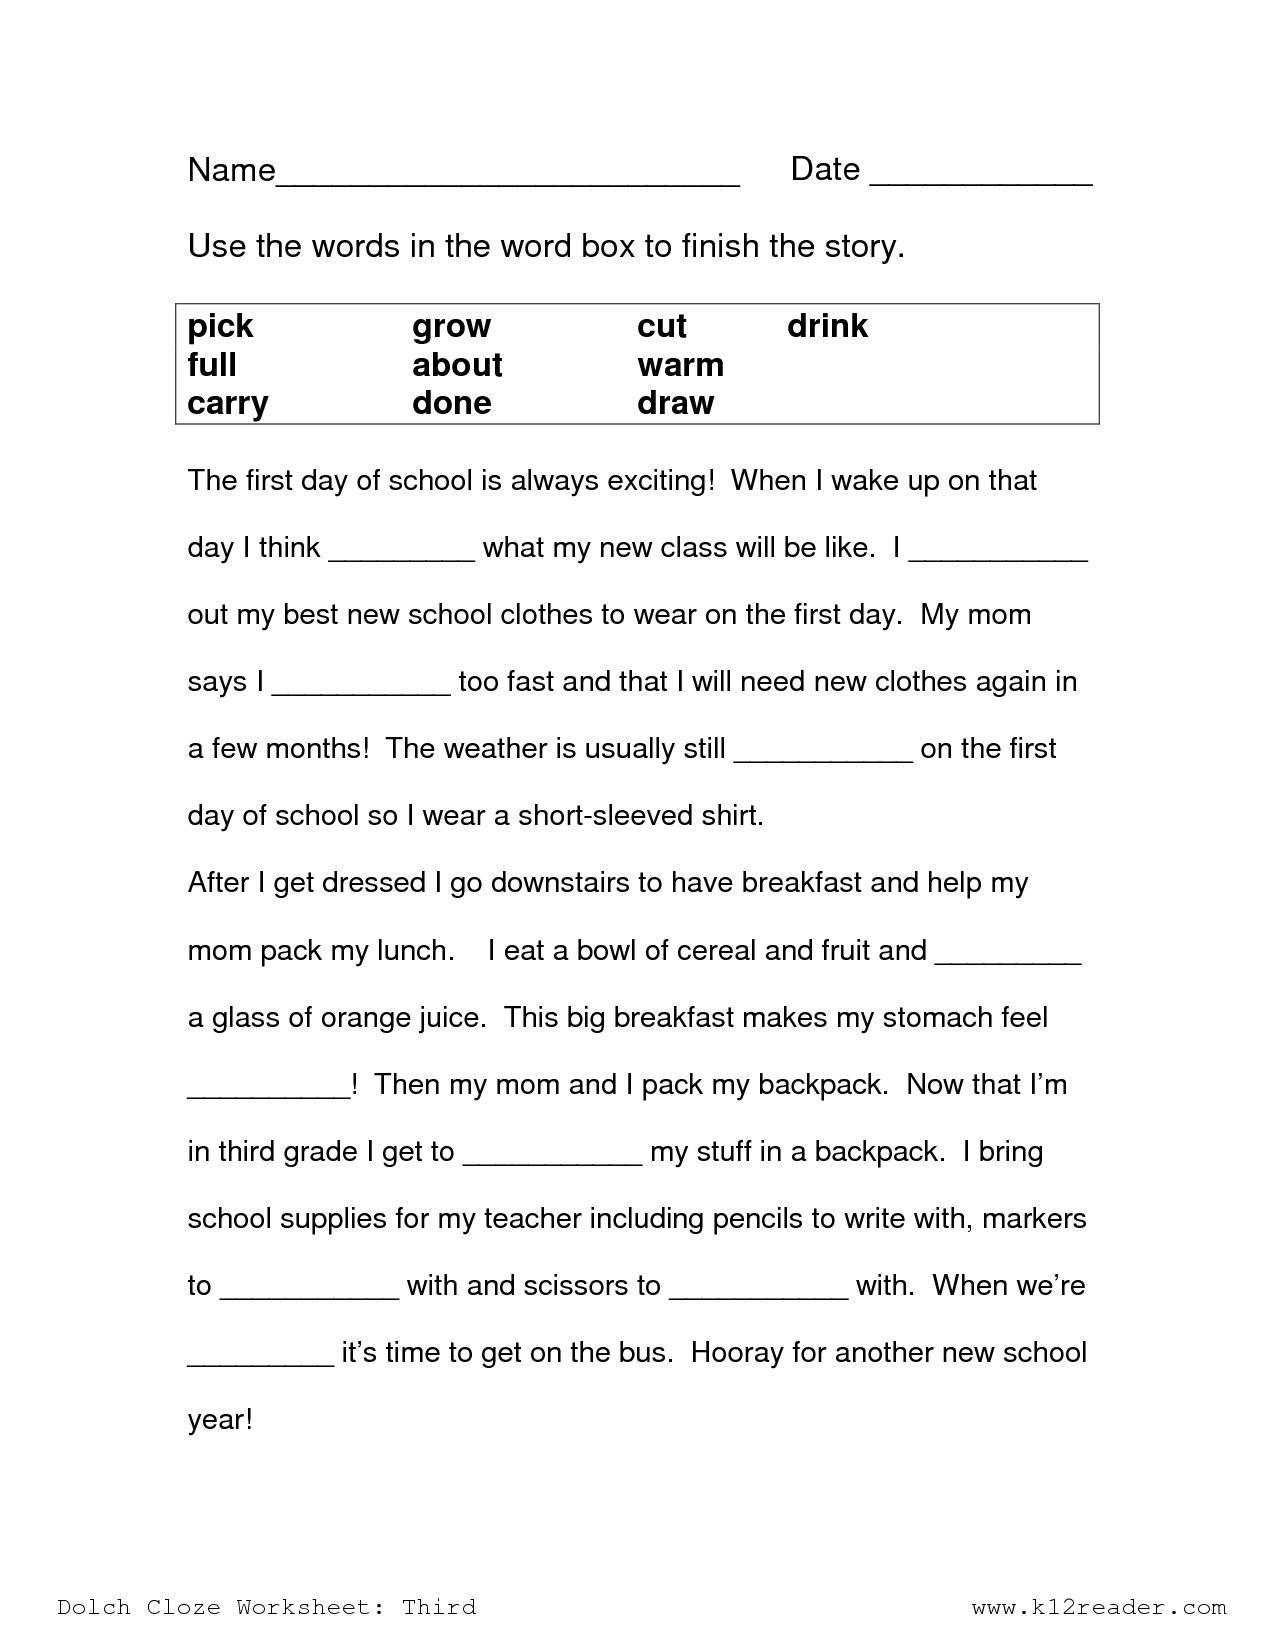 Worksheets Cloze Worksheets 3rd grade context clues south western city school district esl reading comprehension passages and cloze activities for grade